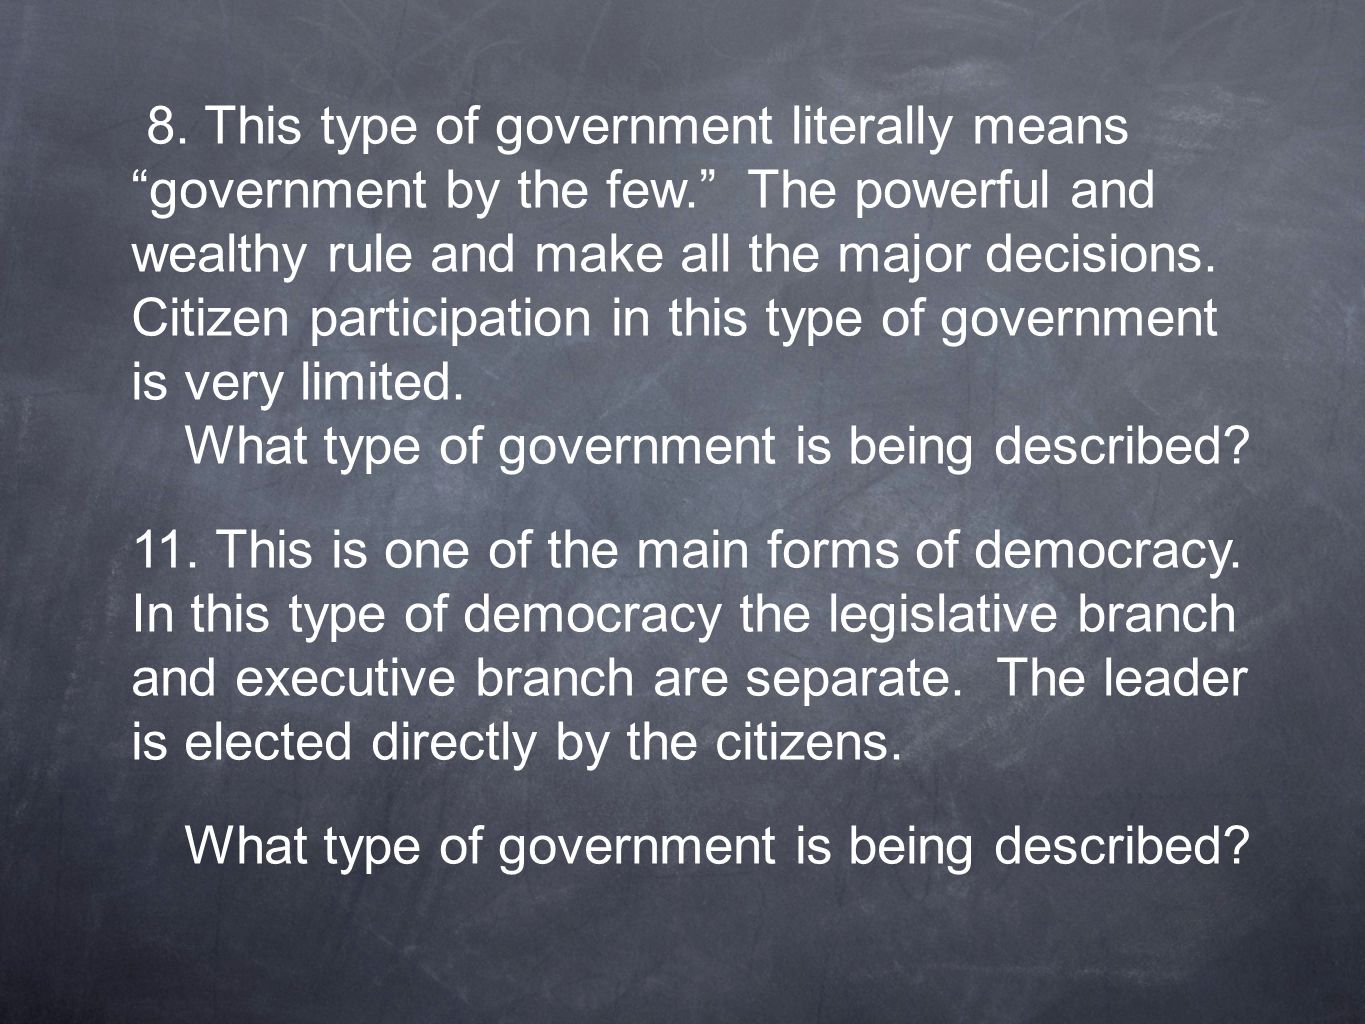 8. This type of government literally means government by the few